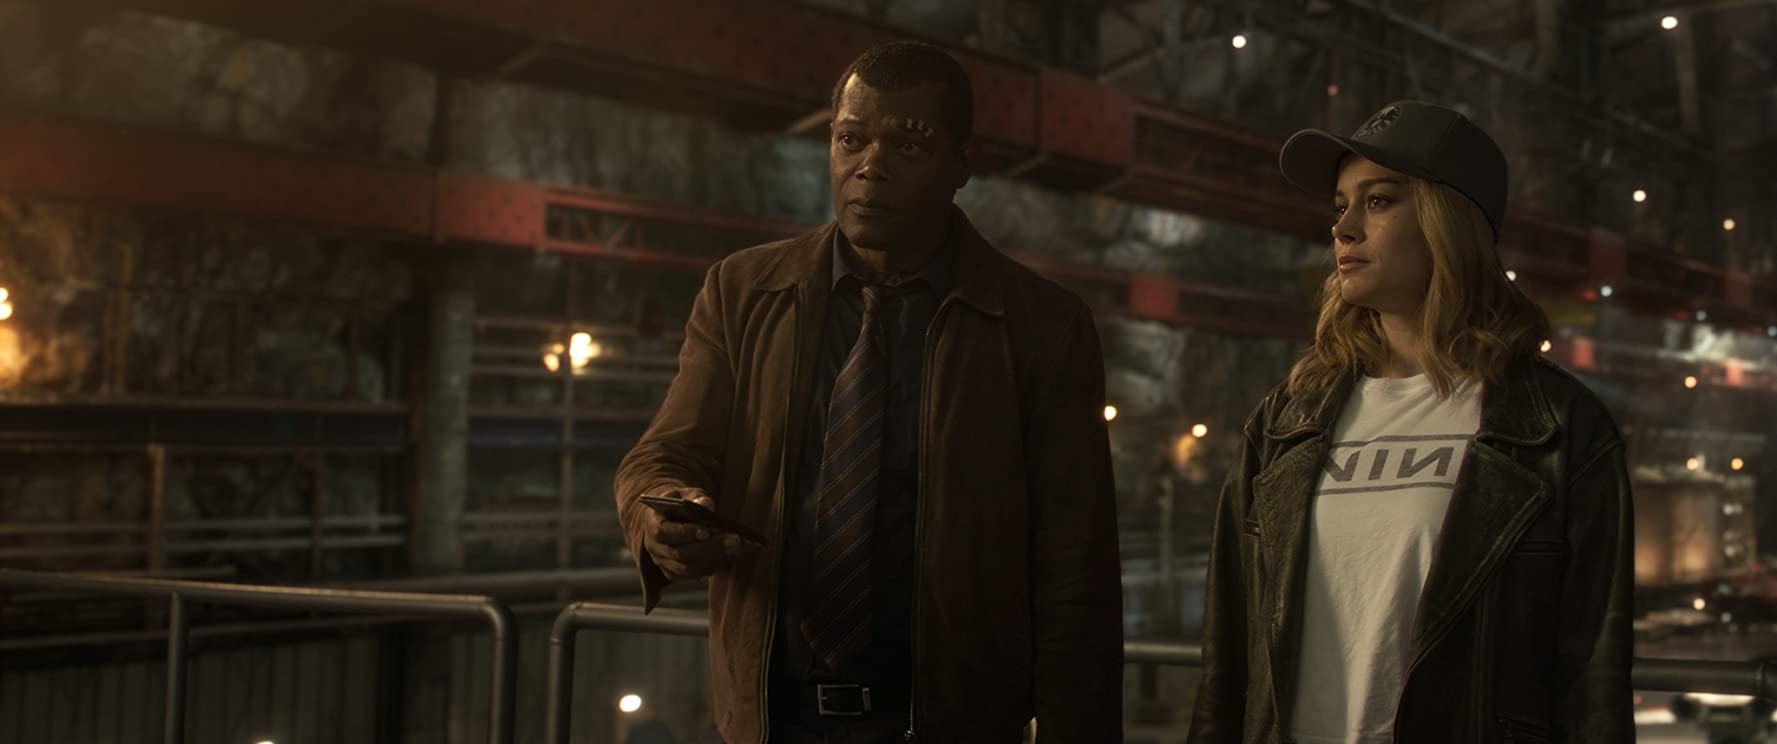 Samuel L. Jackson and Brie Larson in Captain Marvel (2019)